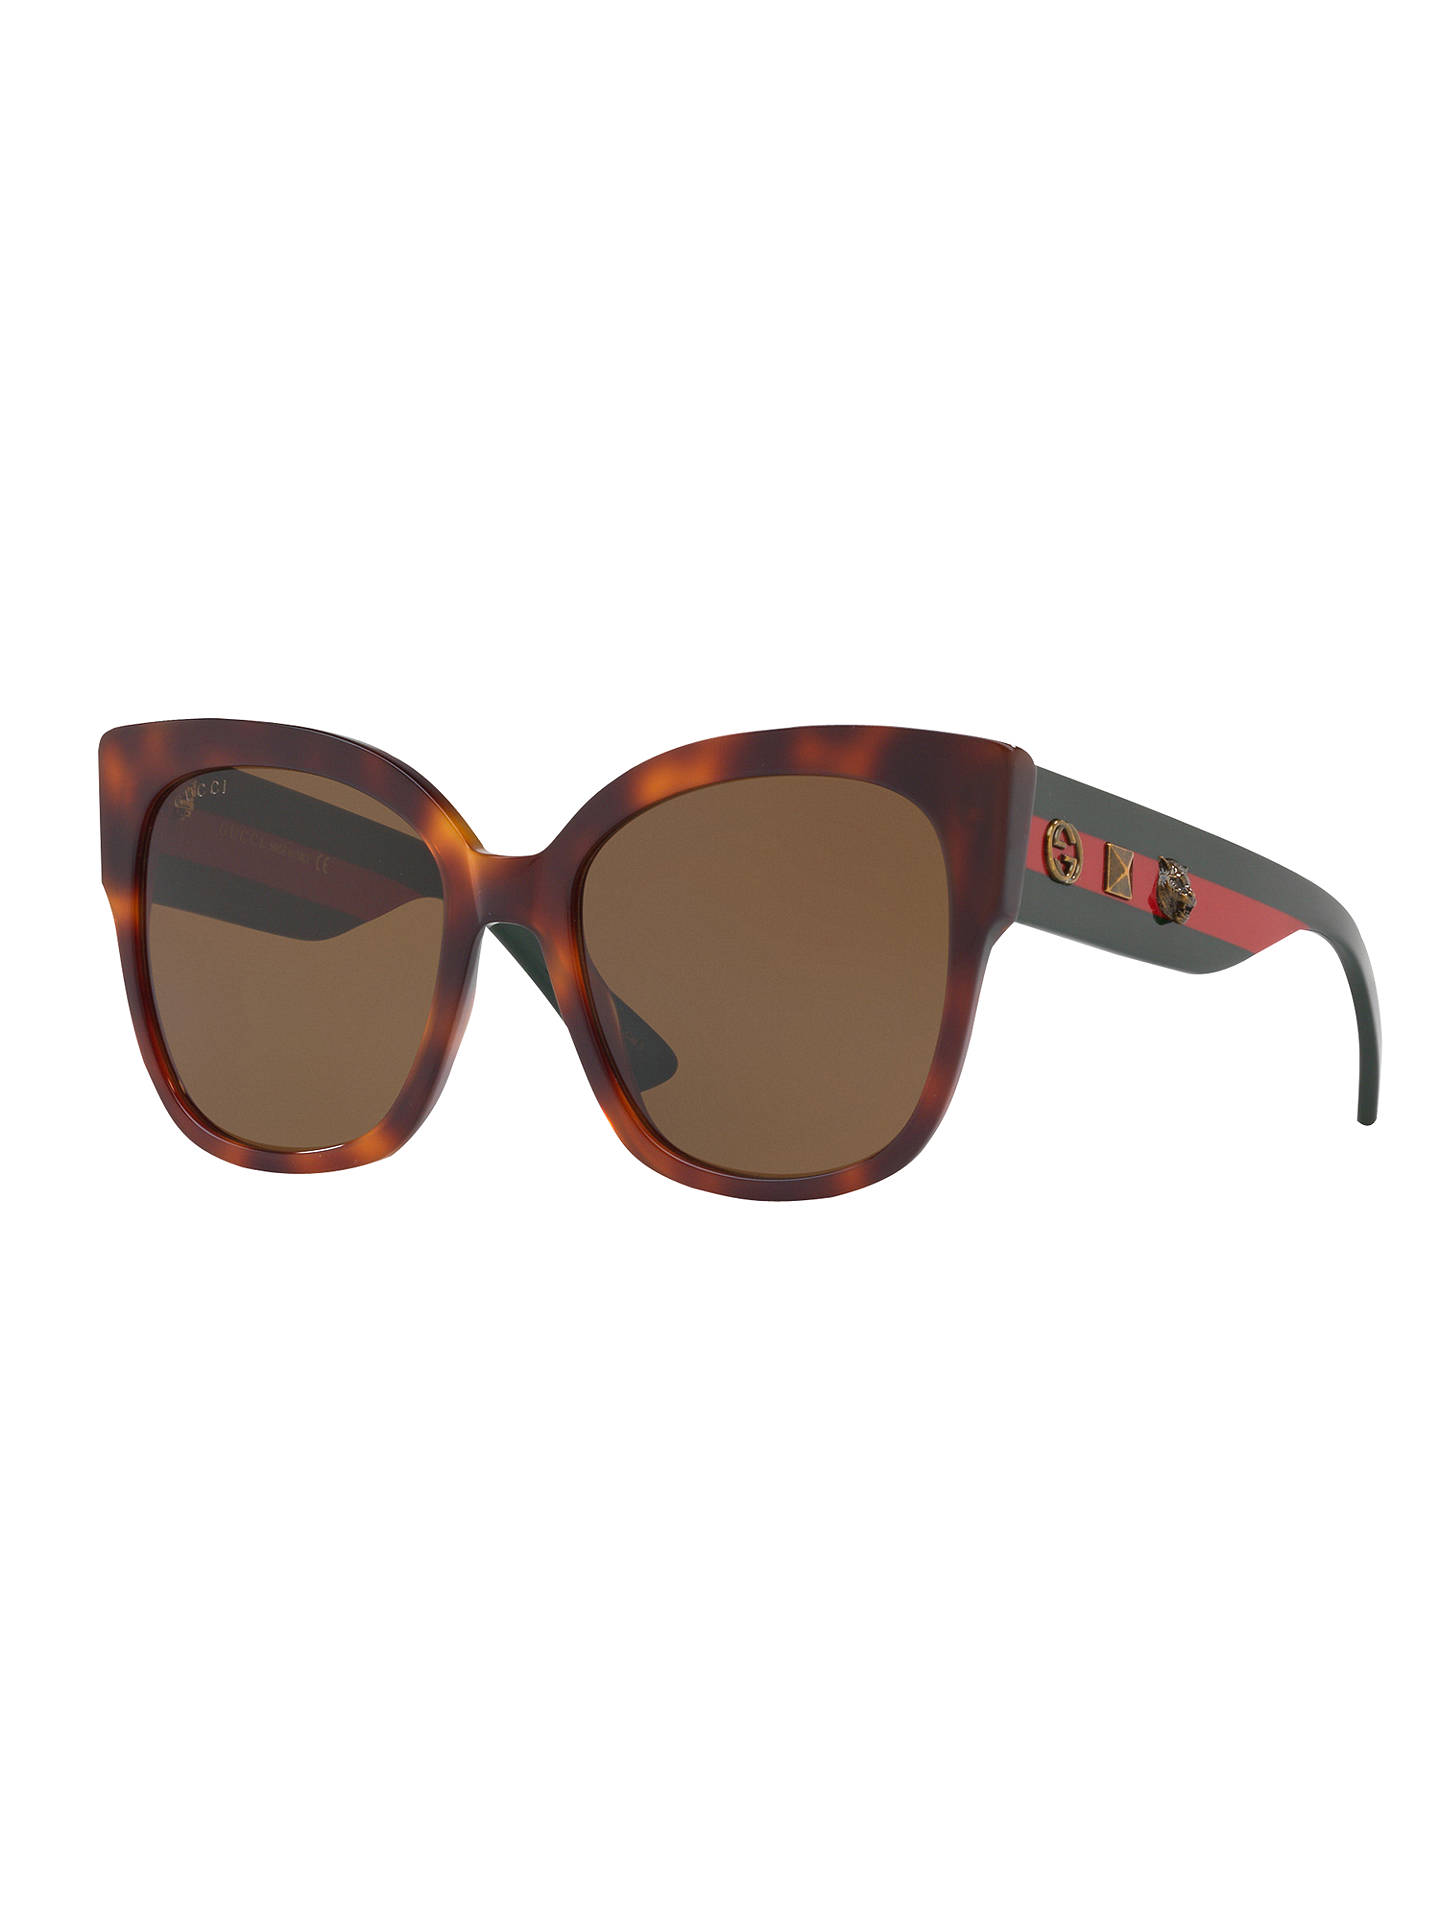 BuyGucci GG0059S Square Sunglasses, Tortoise/Brown Online at johnlewis.com